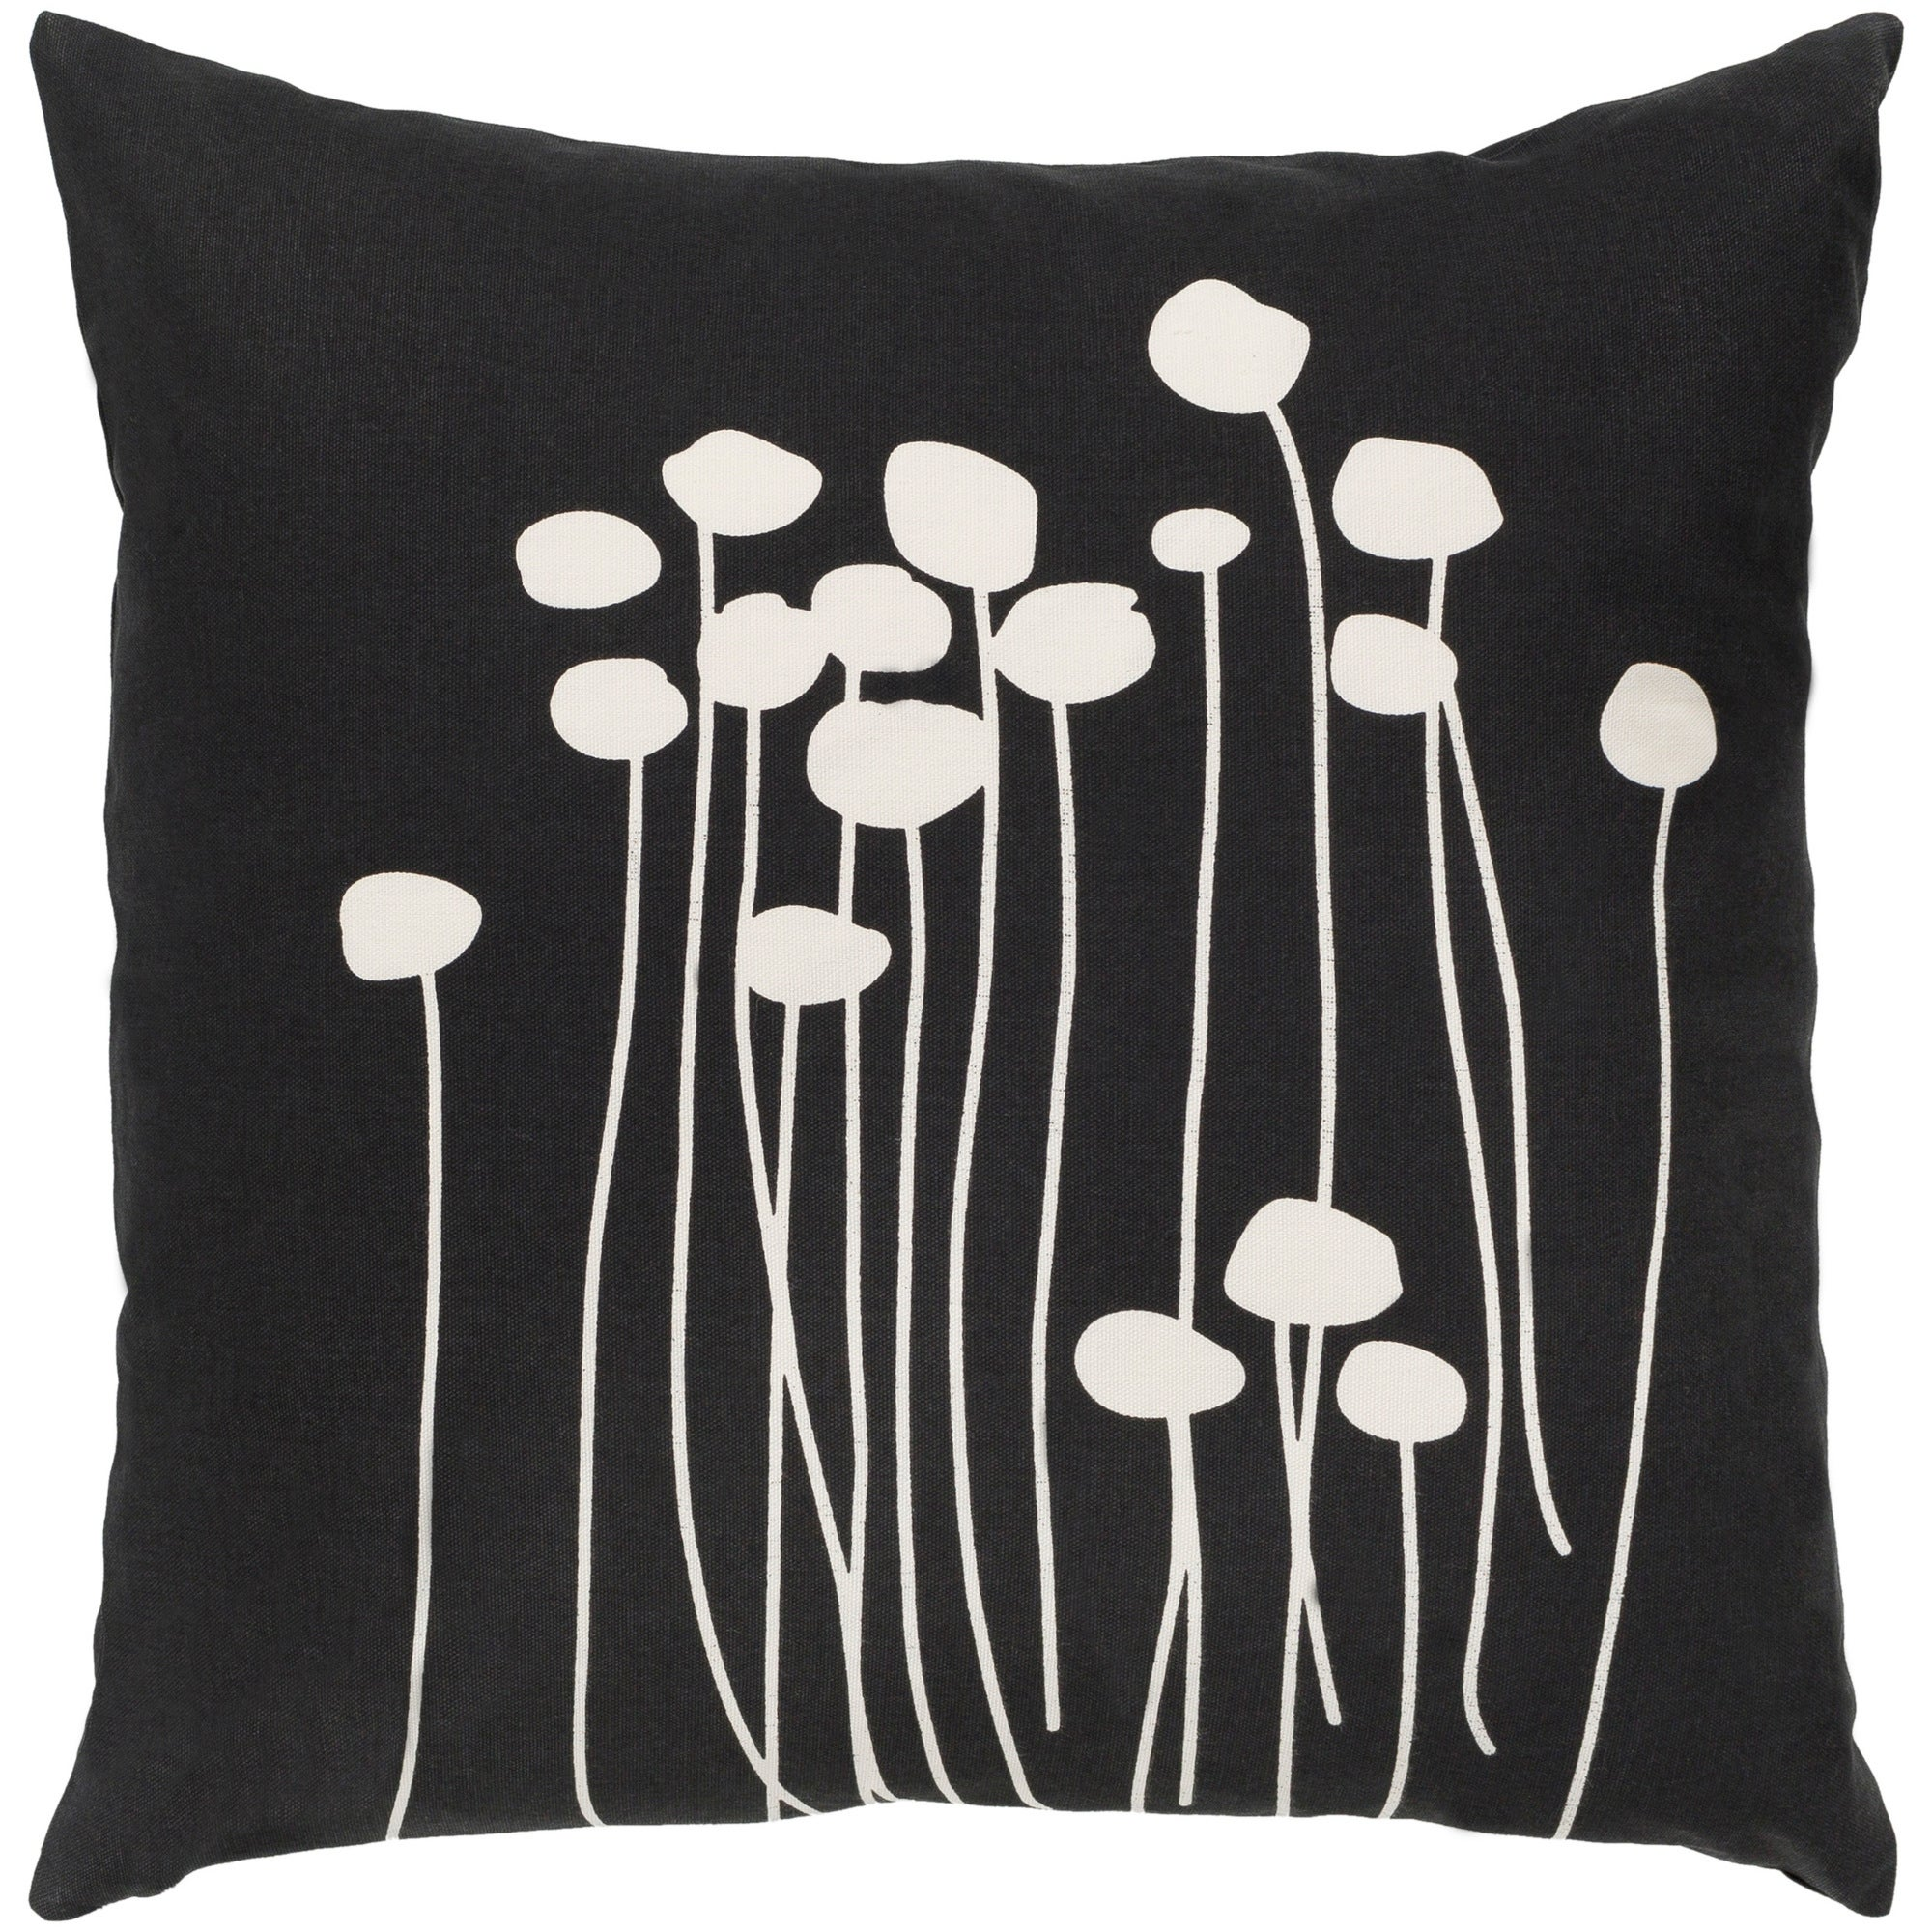 Decorative Black Carlie Floral 18 Inch Throw Pillow Cover Overstock 23142951